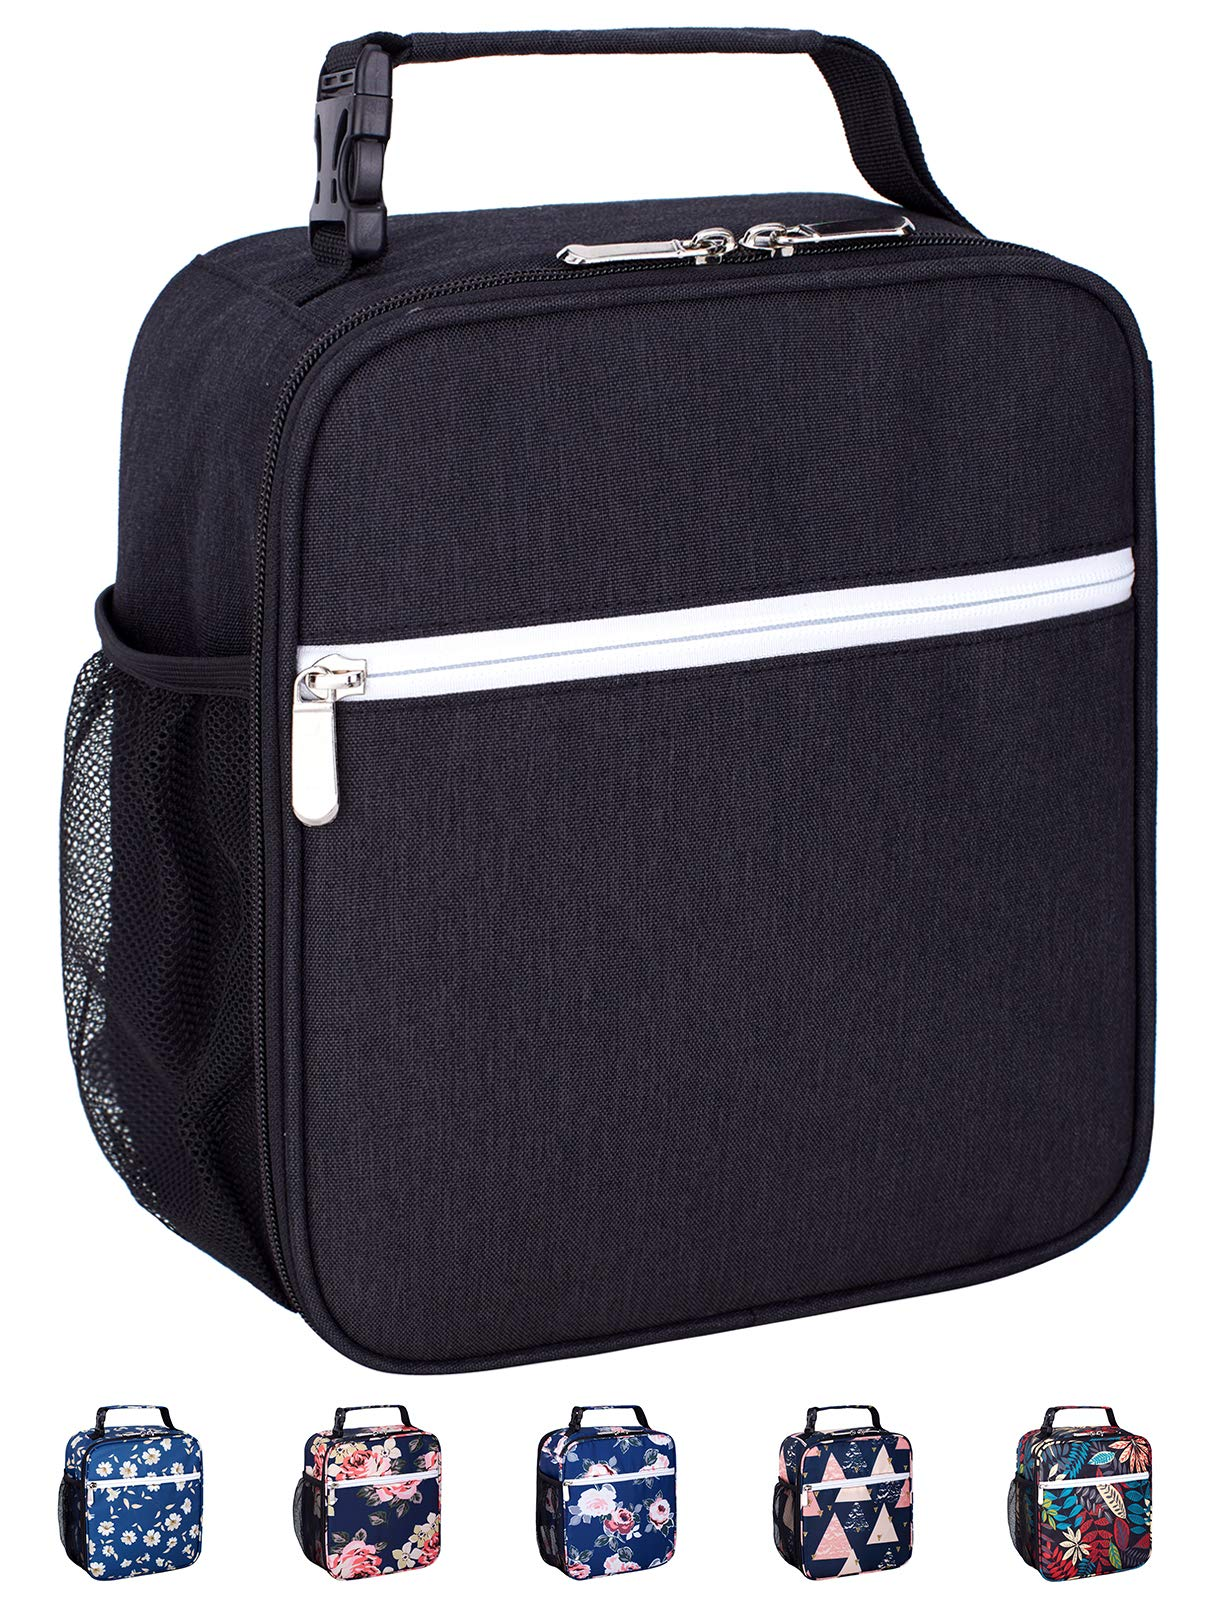 Leakproof Insulated Reusable Cooler Lunch Bag - Durable Compact Office Work School Lunch Box with Multi-Pockets & Detachable Buckle Handle for Women,Men and Kids-Black